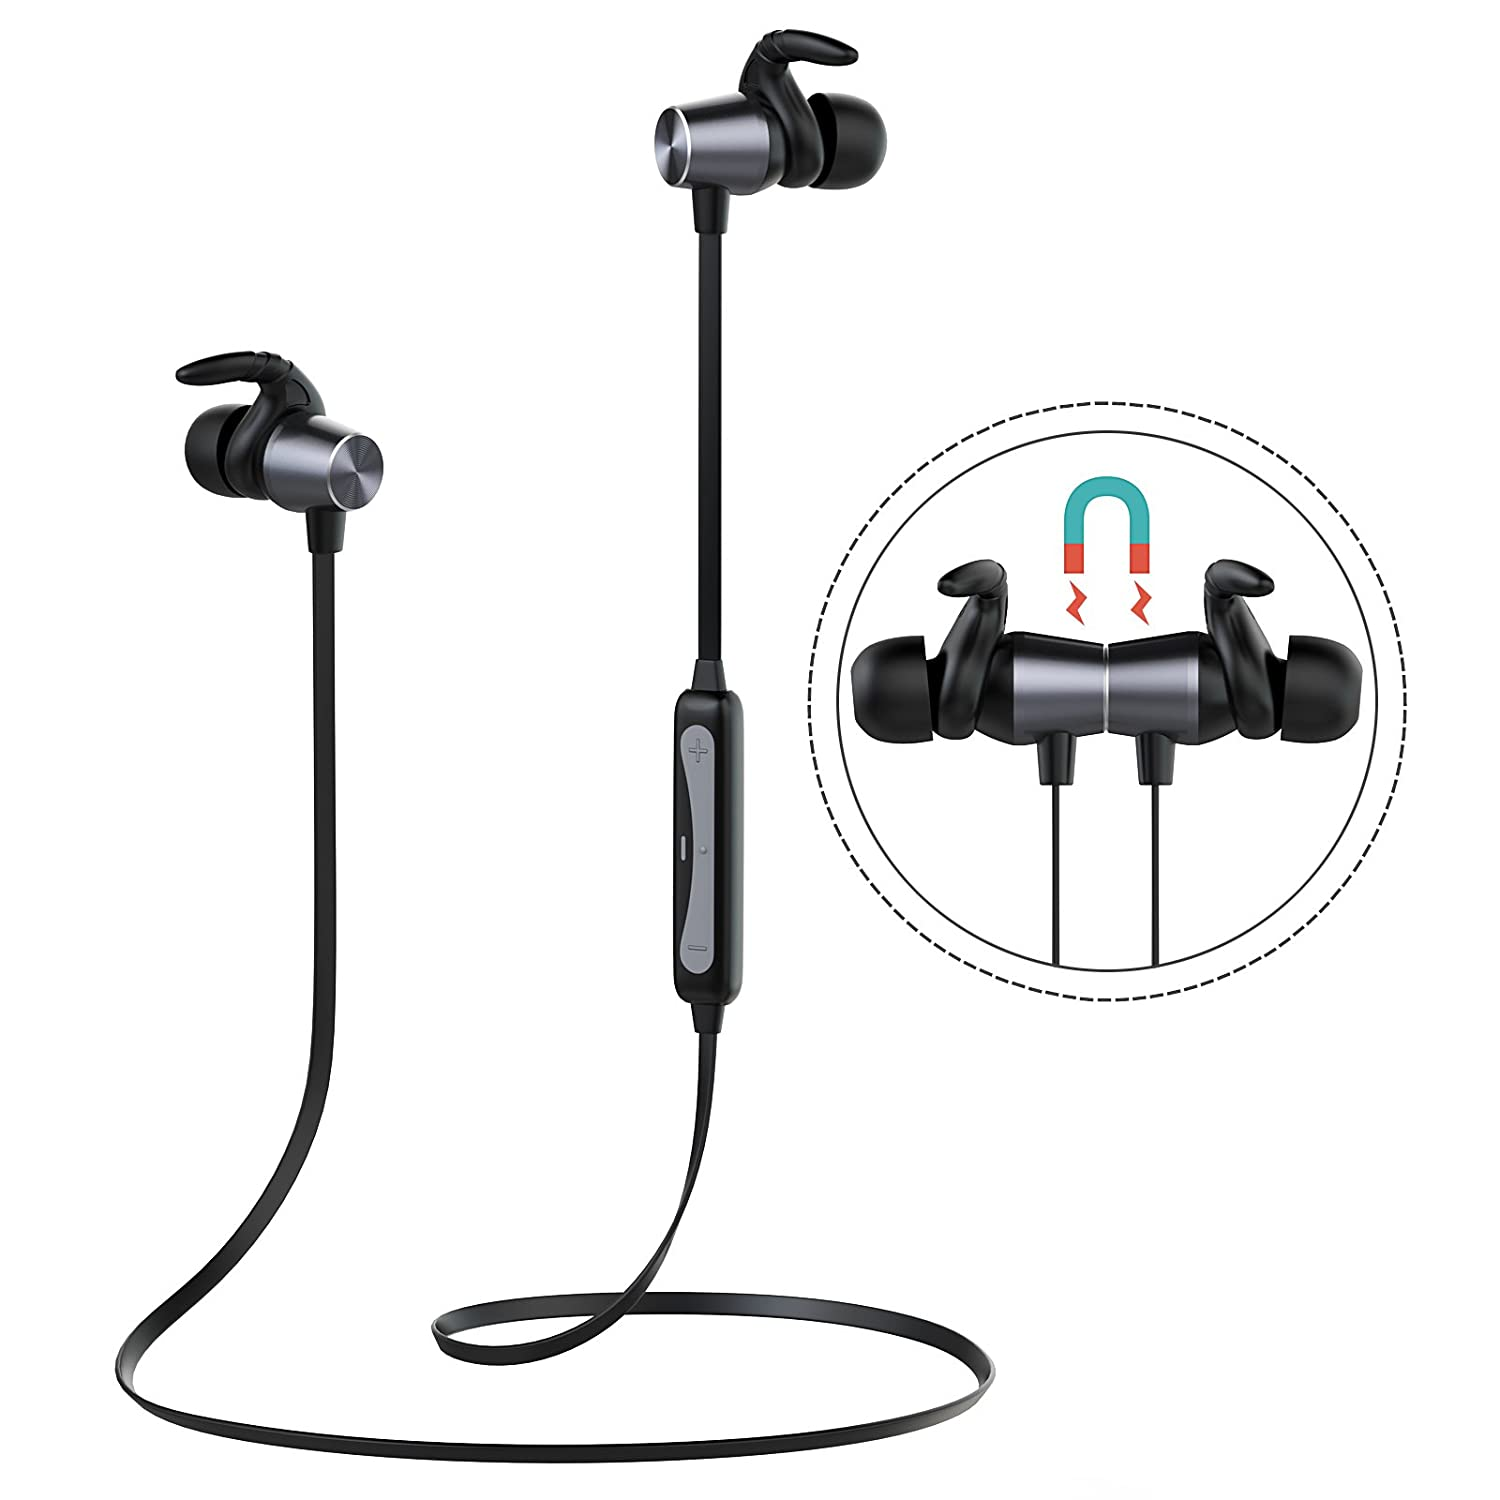 Bluetooth 4.2 Wireless Sports Earphones for Gym Running Workout, Magnetic in-Ear Earphones with Built in Mic, Bluetooth Headphones Sport Earphones FEPEZONG